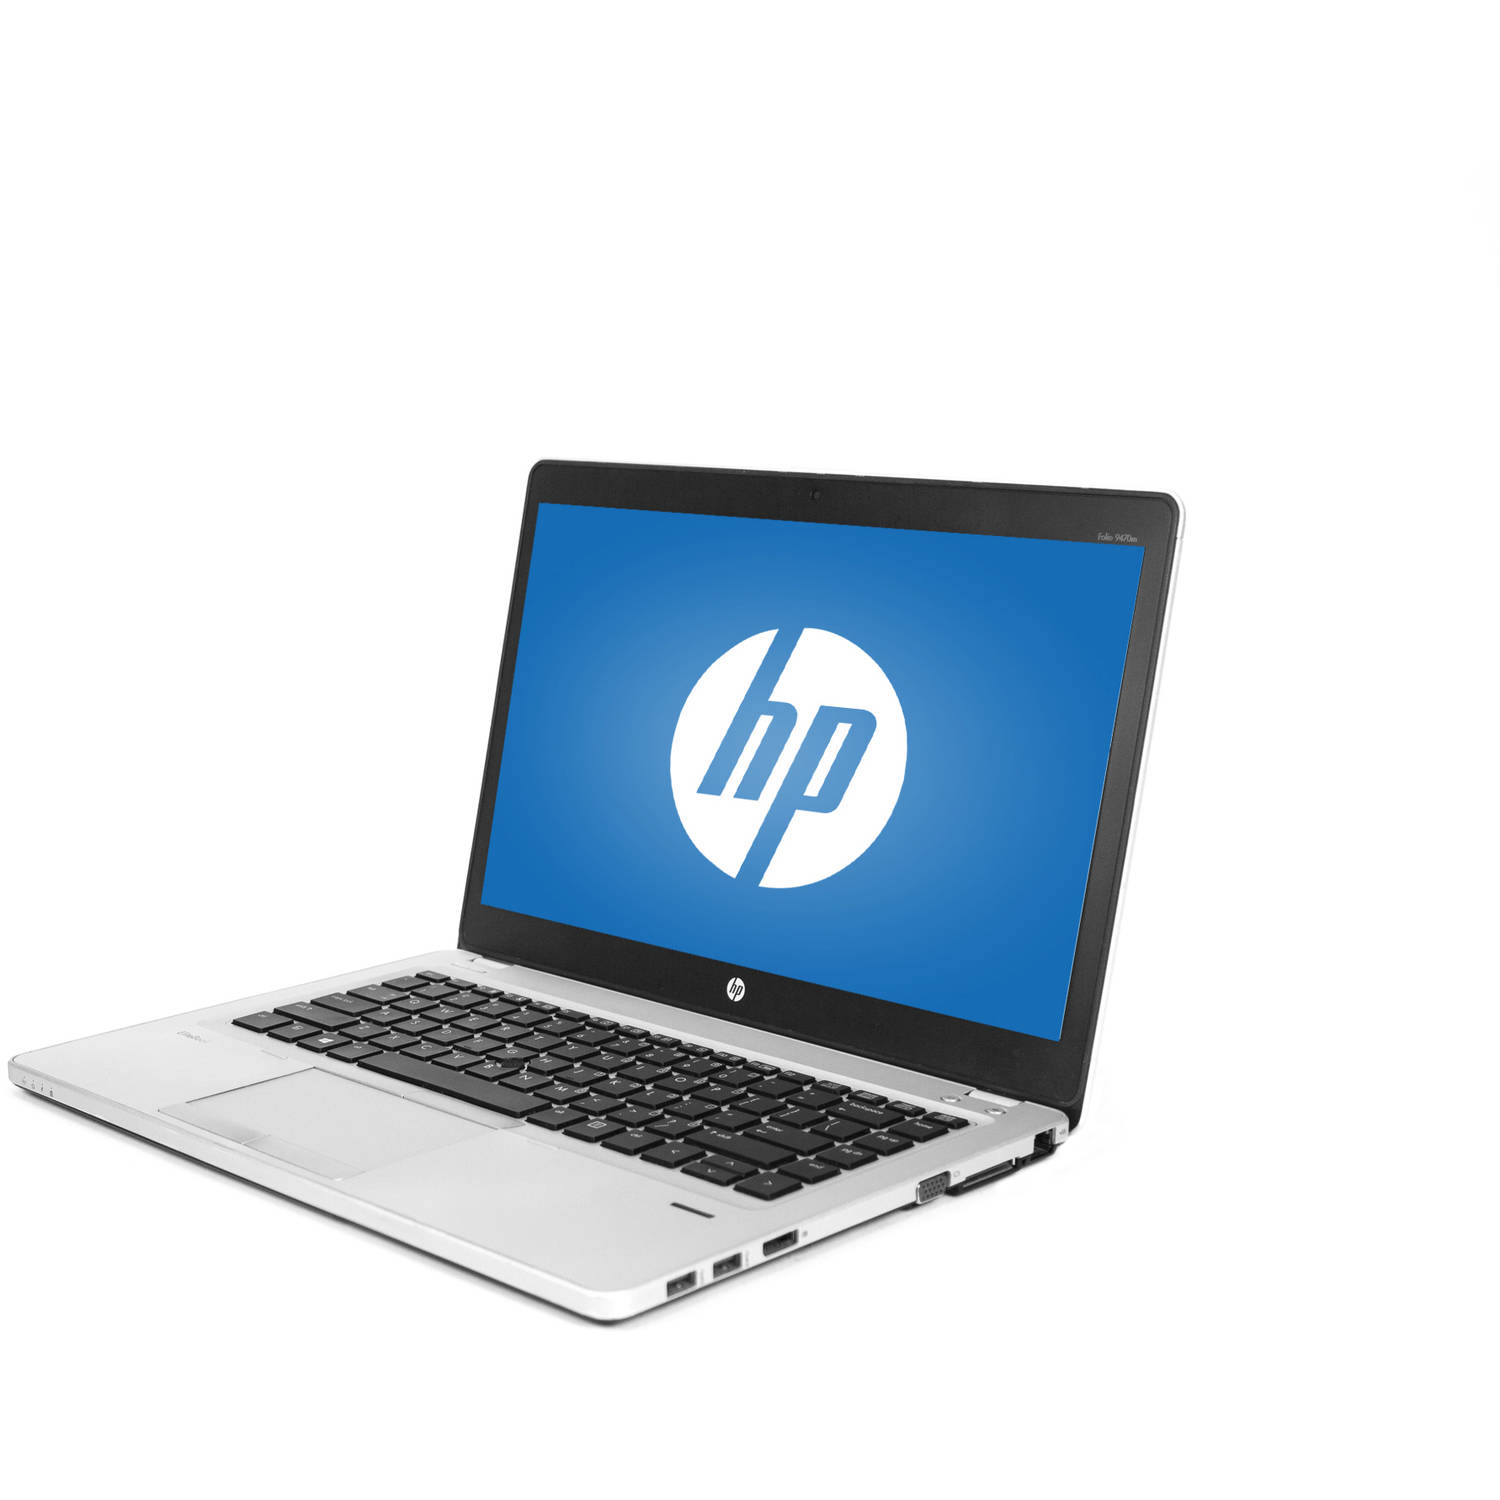 "Refurbished HP Ultrabook 14"" EliteBook Folio 9470M WA5-0889 Laptop PC with Intel Core i5-3427U Processor, 8GB Memory, 256GB Solid State Drive and Windows 10 Pro"